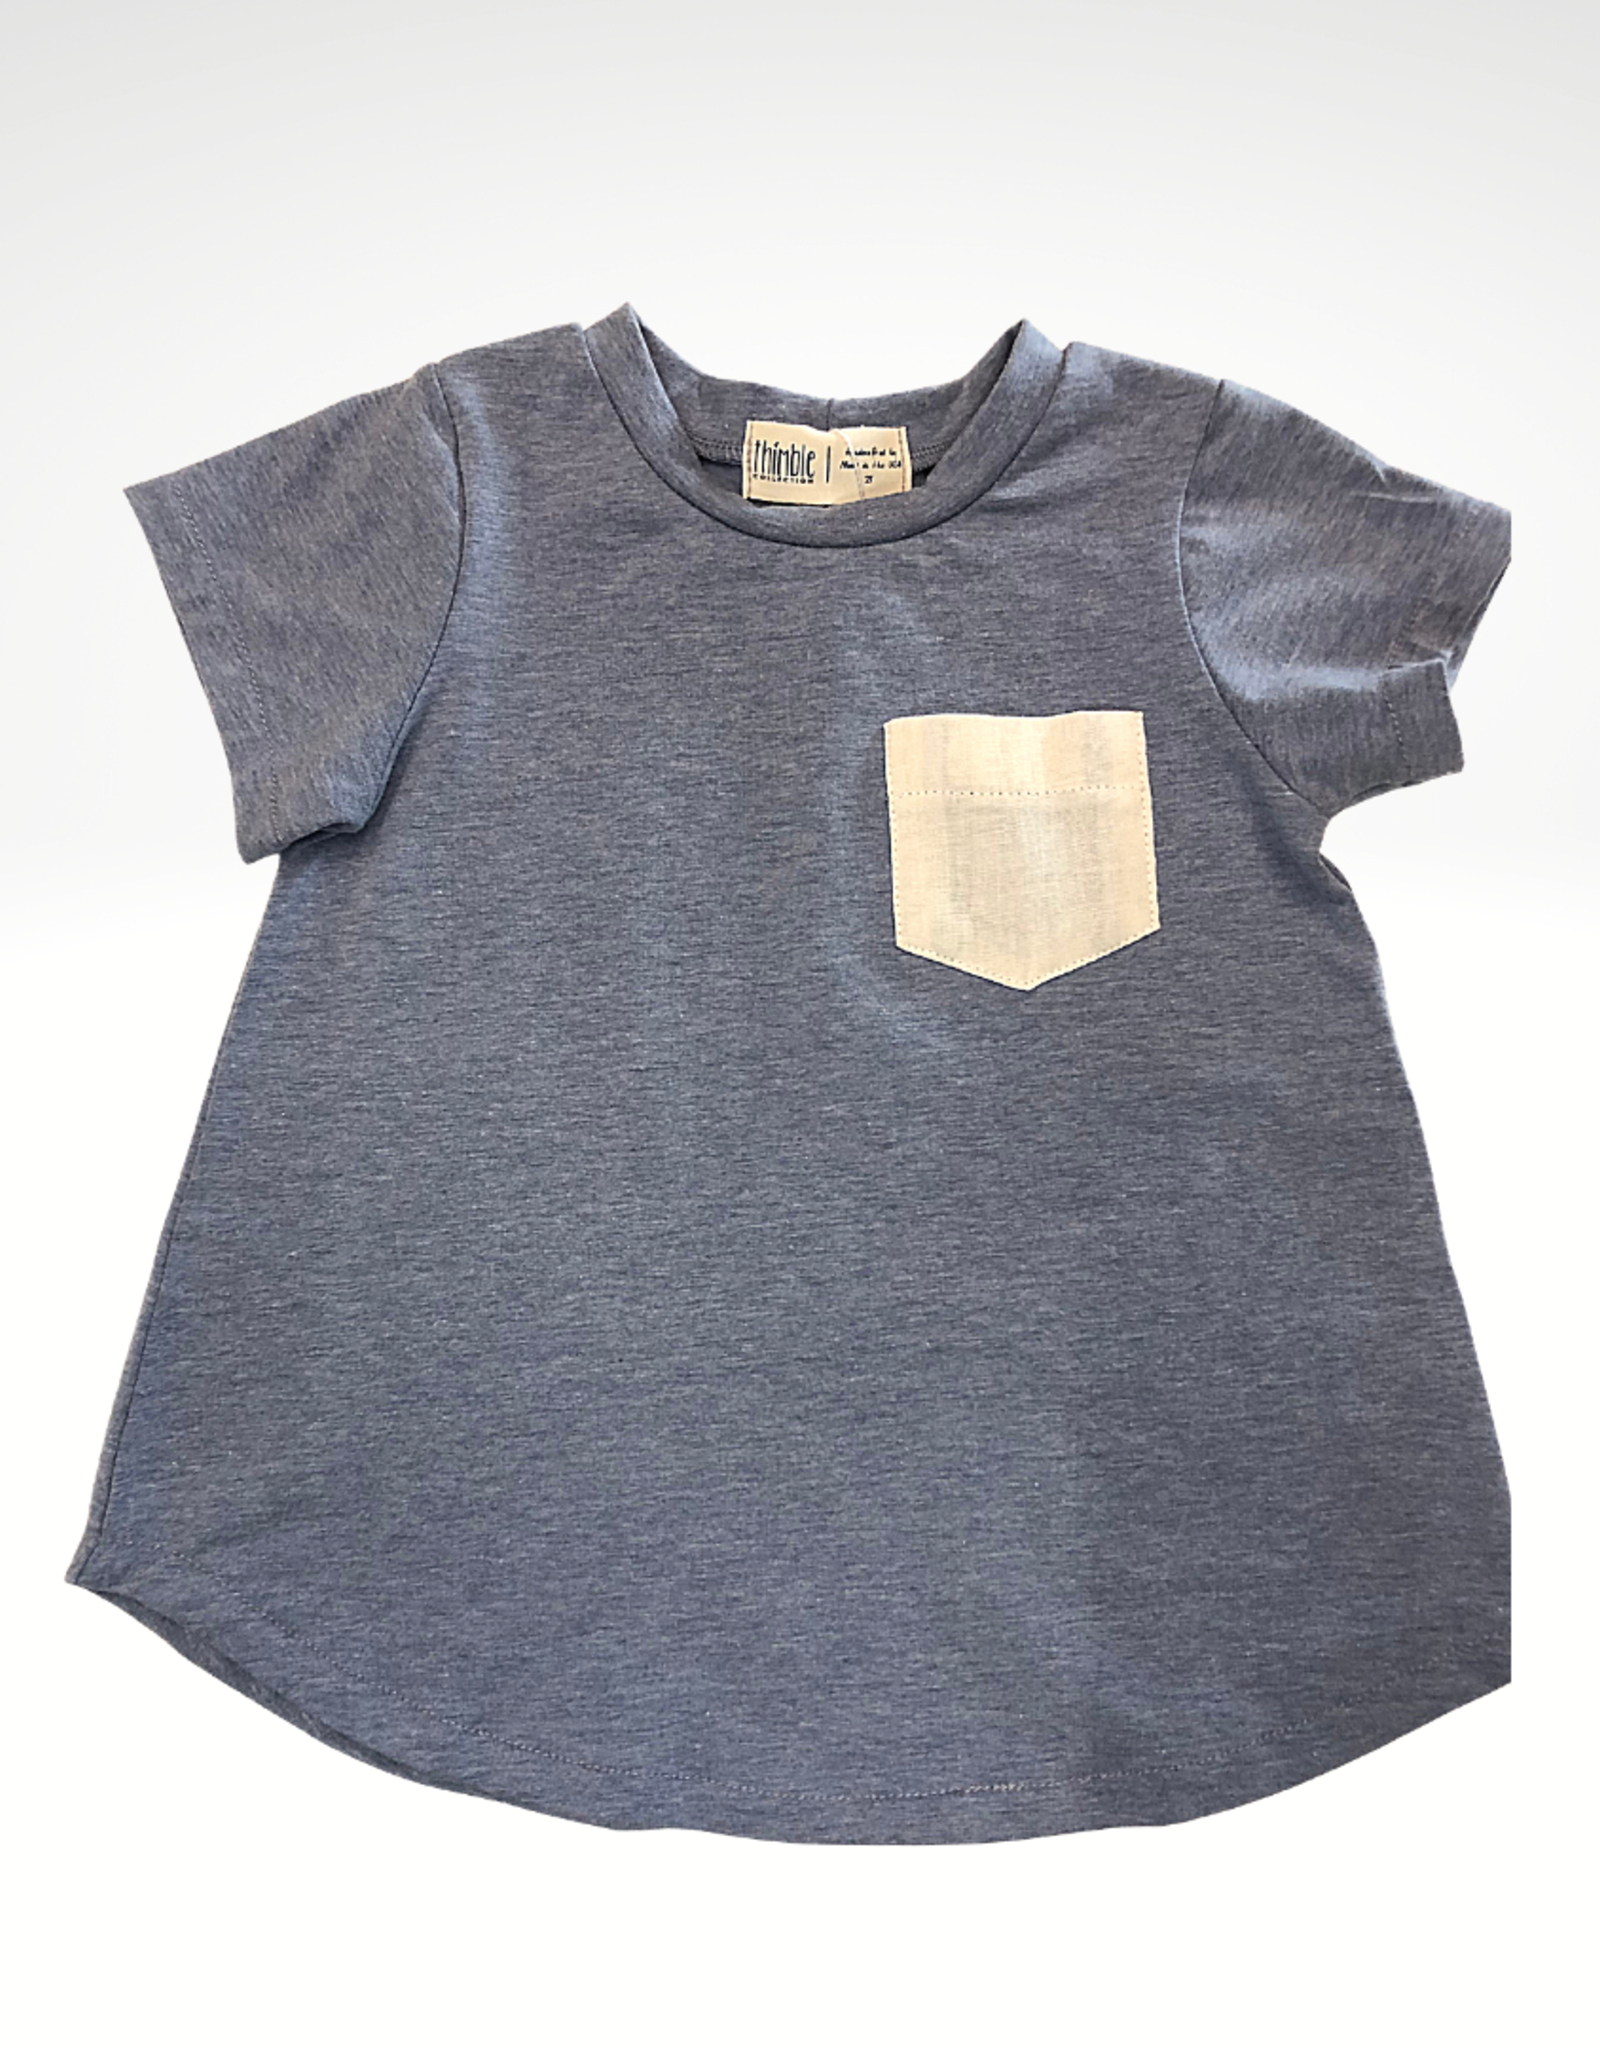 Thimble Collection Pocket Tee, Periwinkle